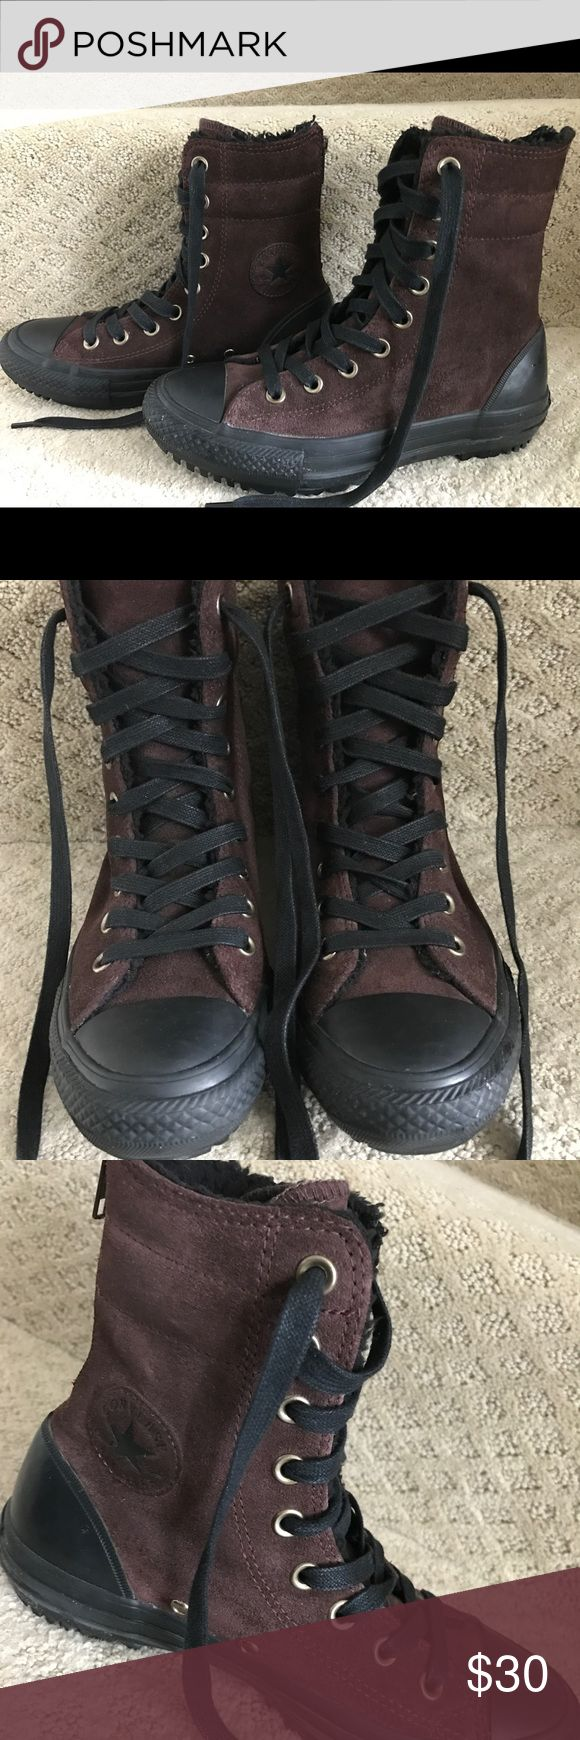 Converse Women's Chuck Taylor All Star A classic and timeless design. Upper - Leather. Lining - Faux Fur for snug fit. Outsole - Rubber. The rear of the shoe is provided with a zipper closure. Looks like brand new and in good condition. Worn 3 times only! Converse Shoes Ankle Boots & Booties